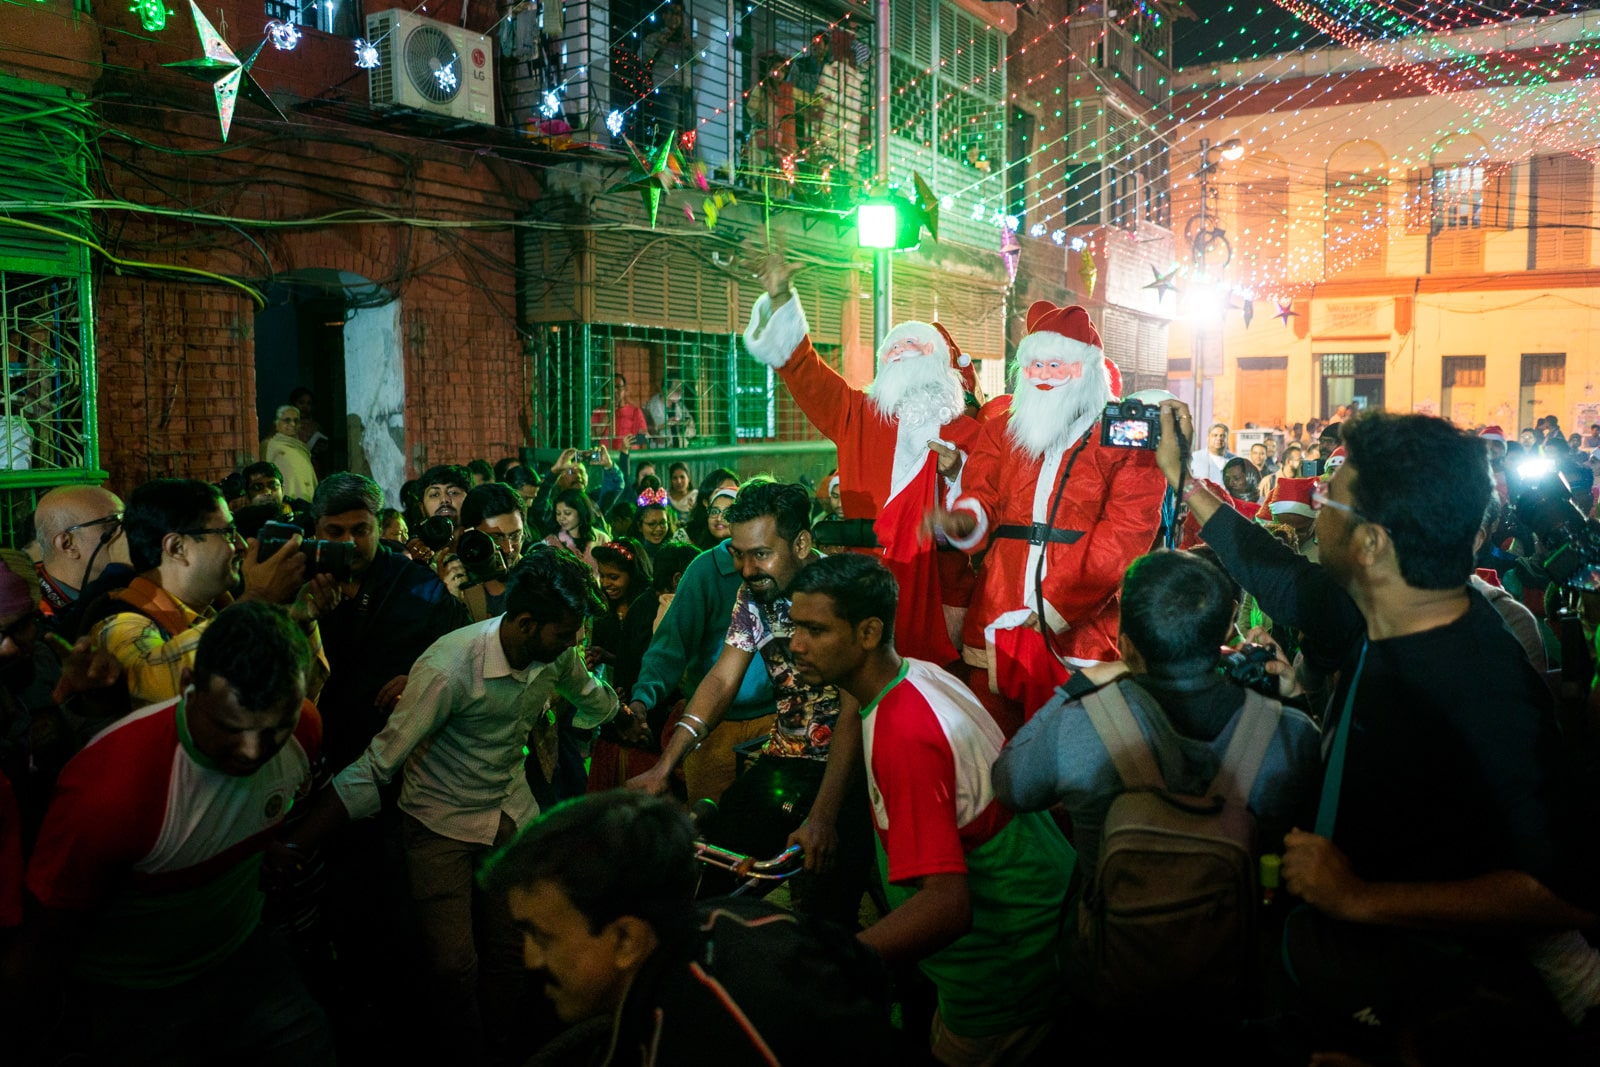 Celebrating Christmas in Kolkata, India - Santas riding on a rickshaw in Barracks on Christmas Eve - Lost With Purpose travel blog